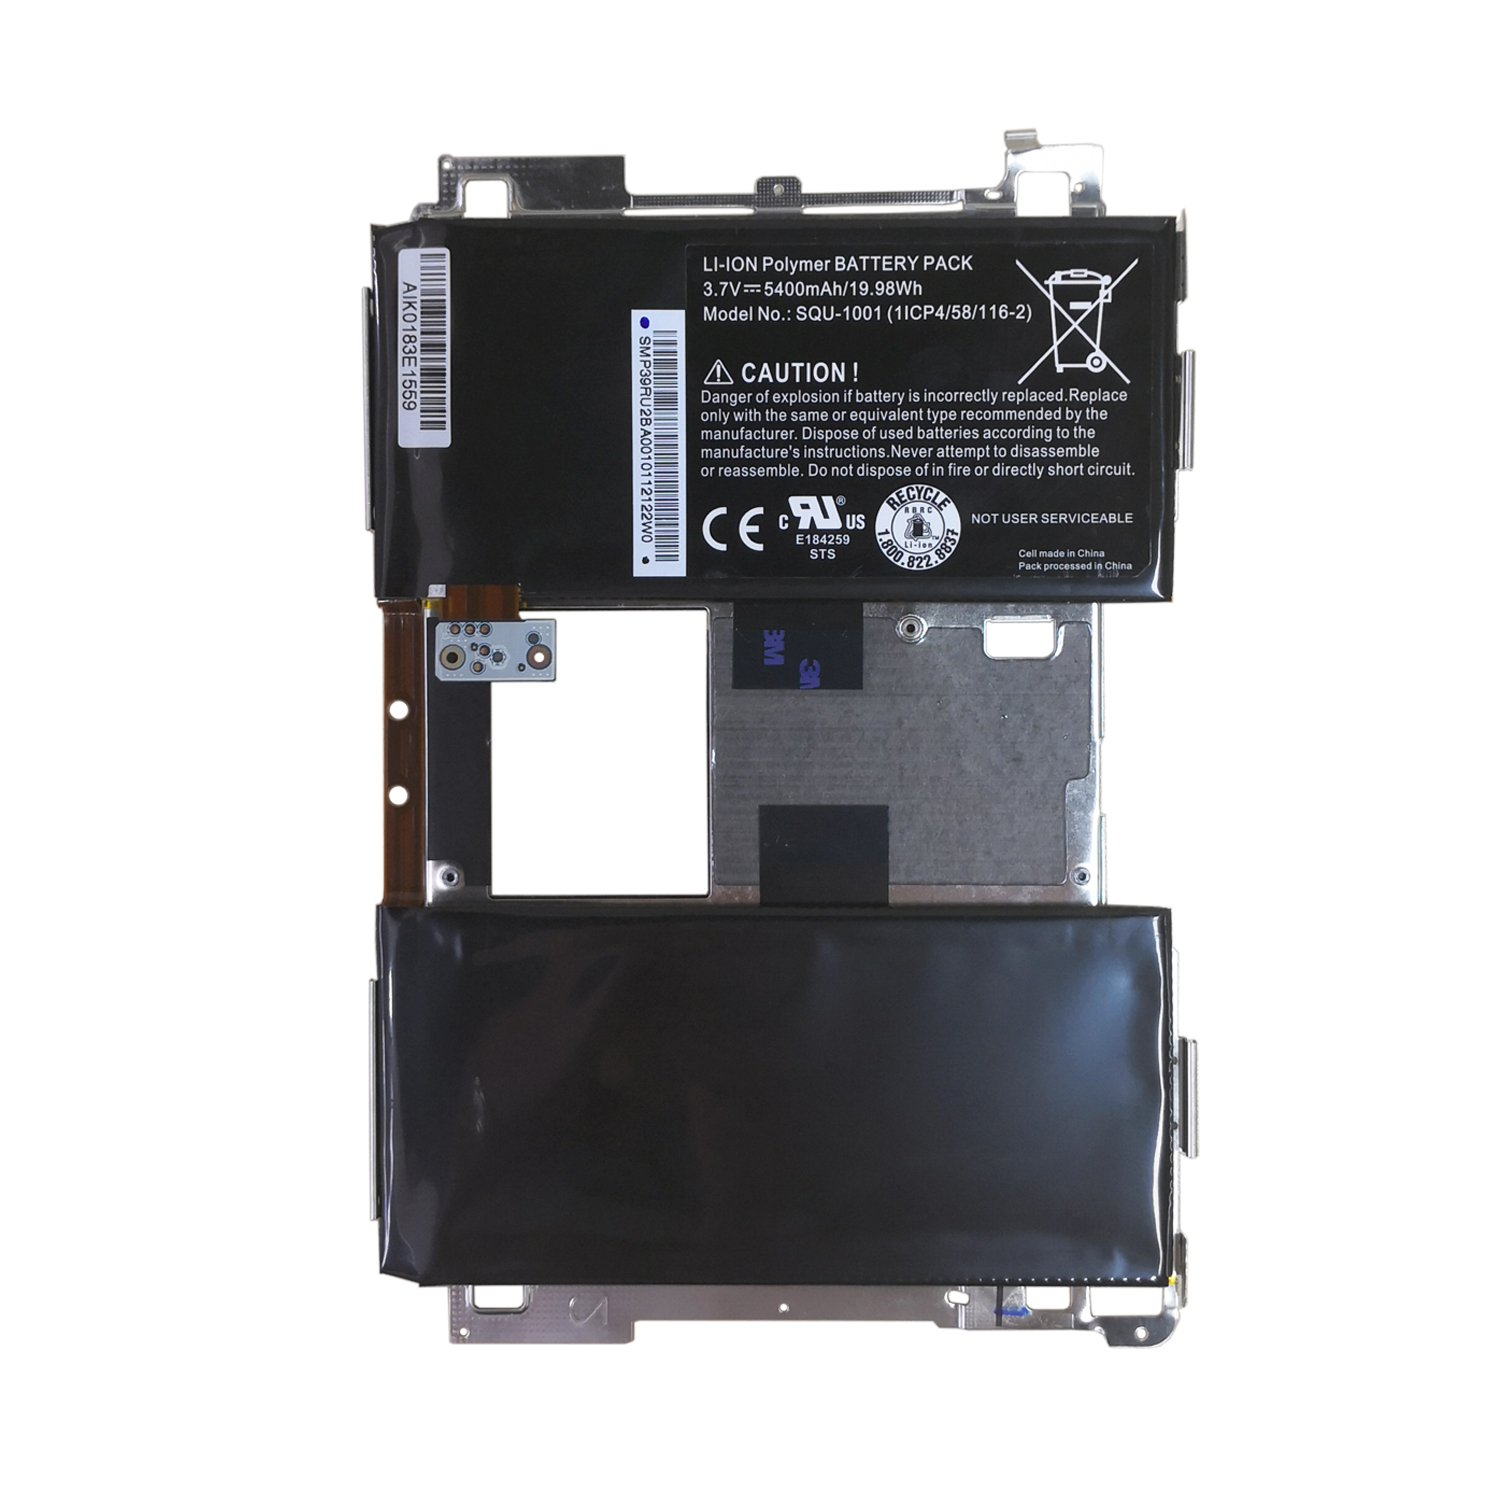 Wee Li-Polymer Replacement Battery for BlackBerry Playbook, fits BlackBerry SQU-1001 916TA029H 921600001 RU1(5400mAh 19.98Wh)